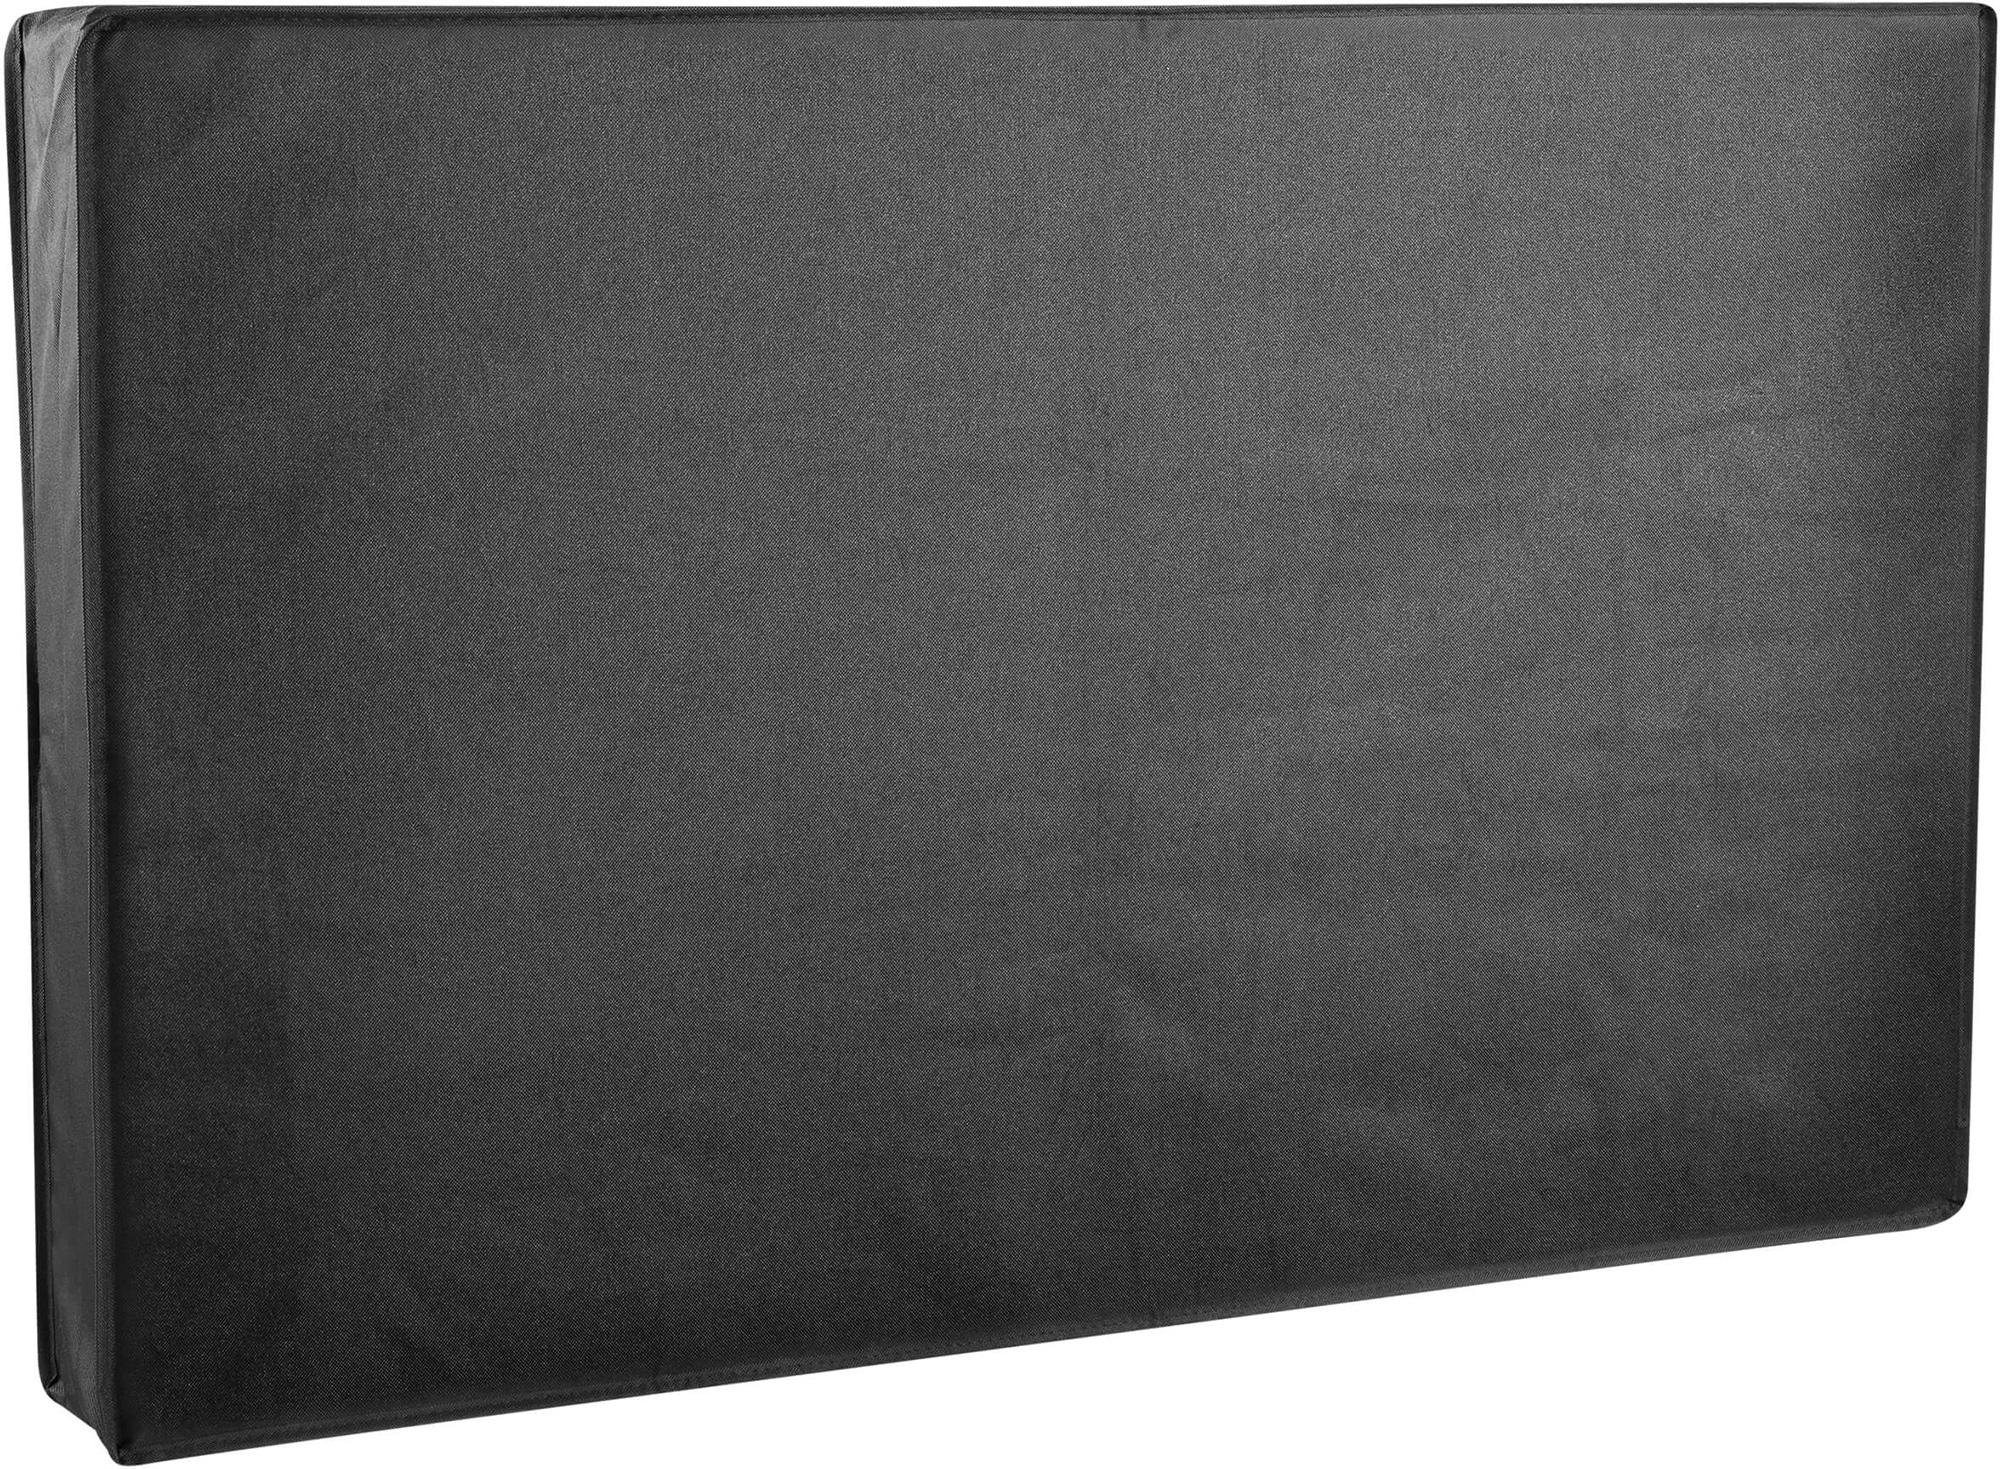 Tripp Lite DM80COVER Weatherproof Outdoor TV Cover for 80 Inch TVs and Monitors TRL-DM80COVER